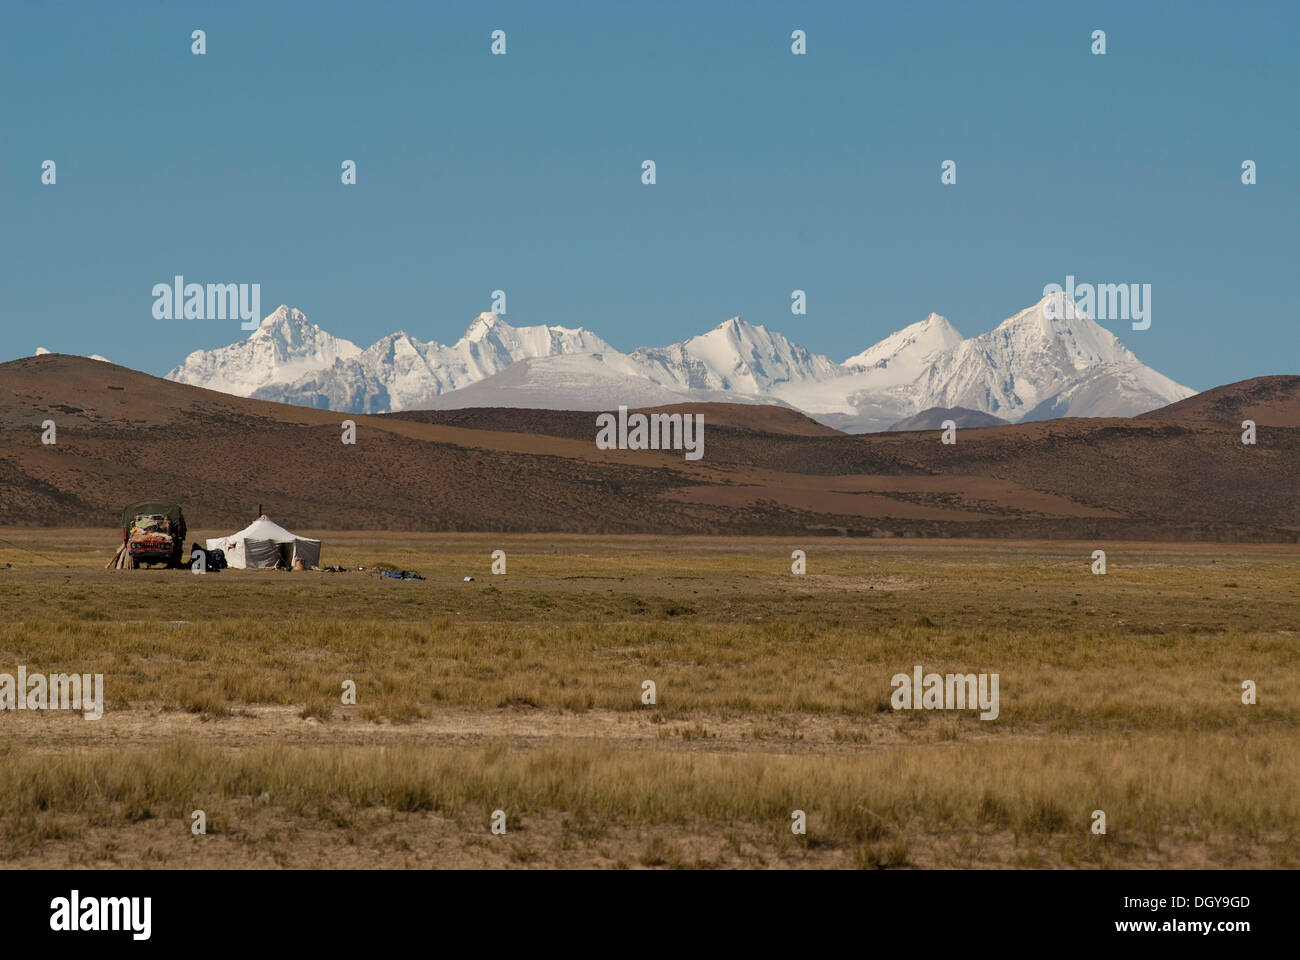 Nomadic tent with a Chinese truck in front of the mighty peaks of the snow-capped Himalayan main ridge, Ngari Province - Stock Image